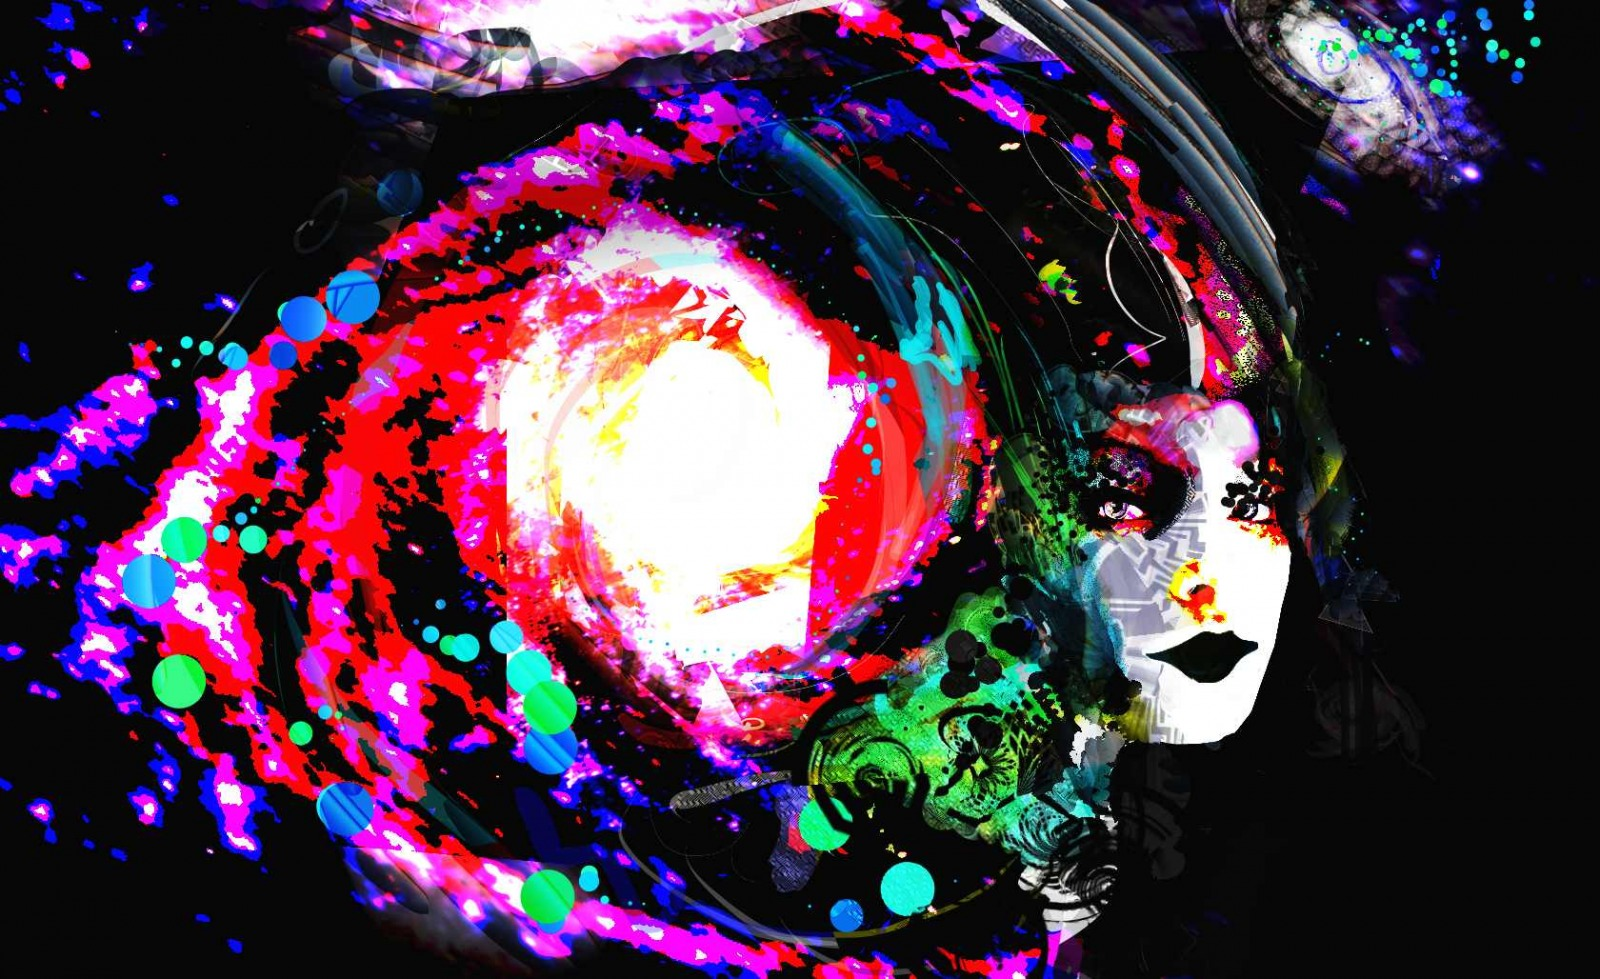 Psychedelic wallpaper and background 1600x979 id 227233 for Cool wallpaper designs for walls